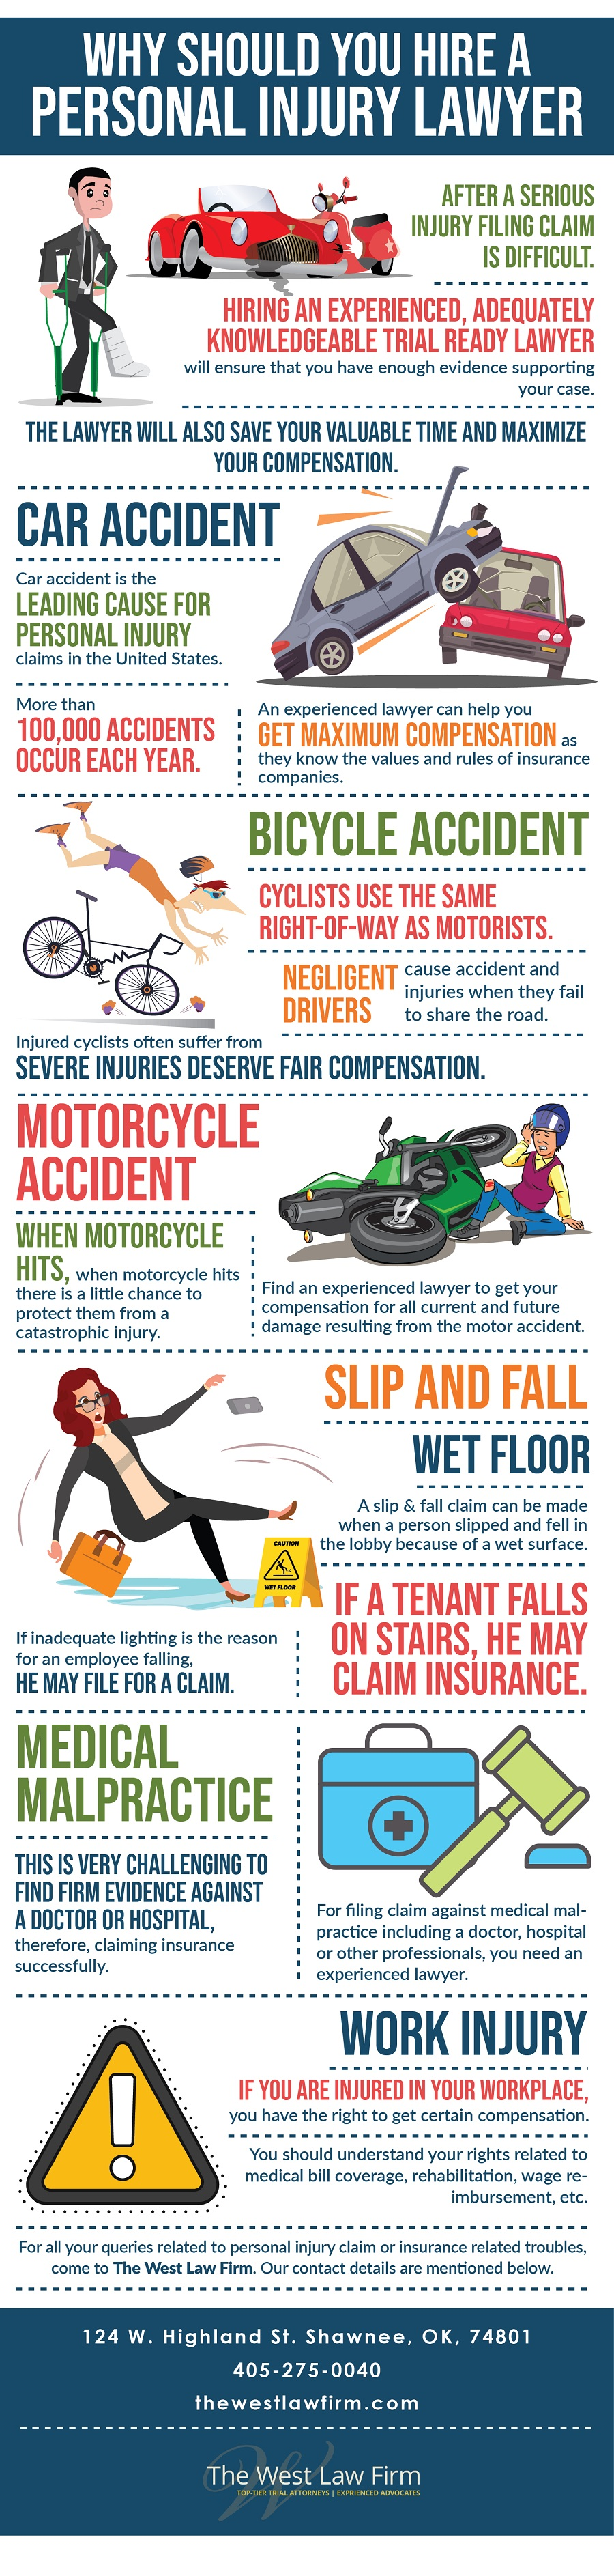 Why should you hire a personal injury lawyer